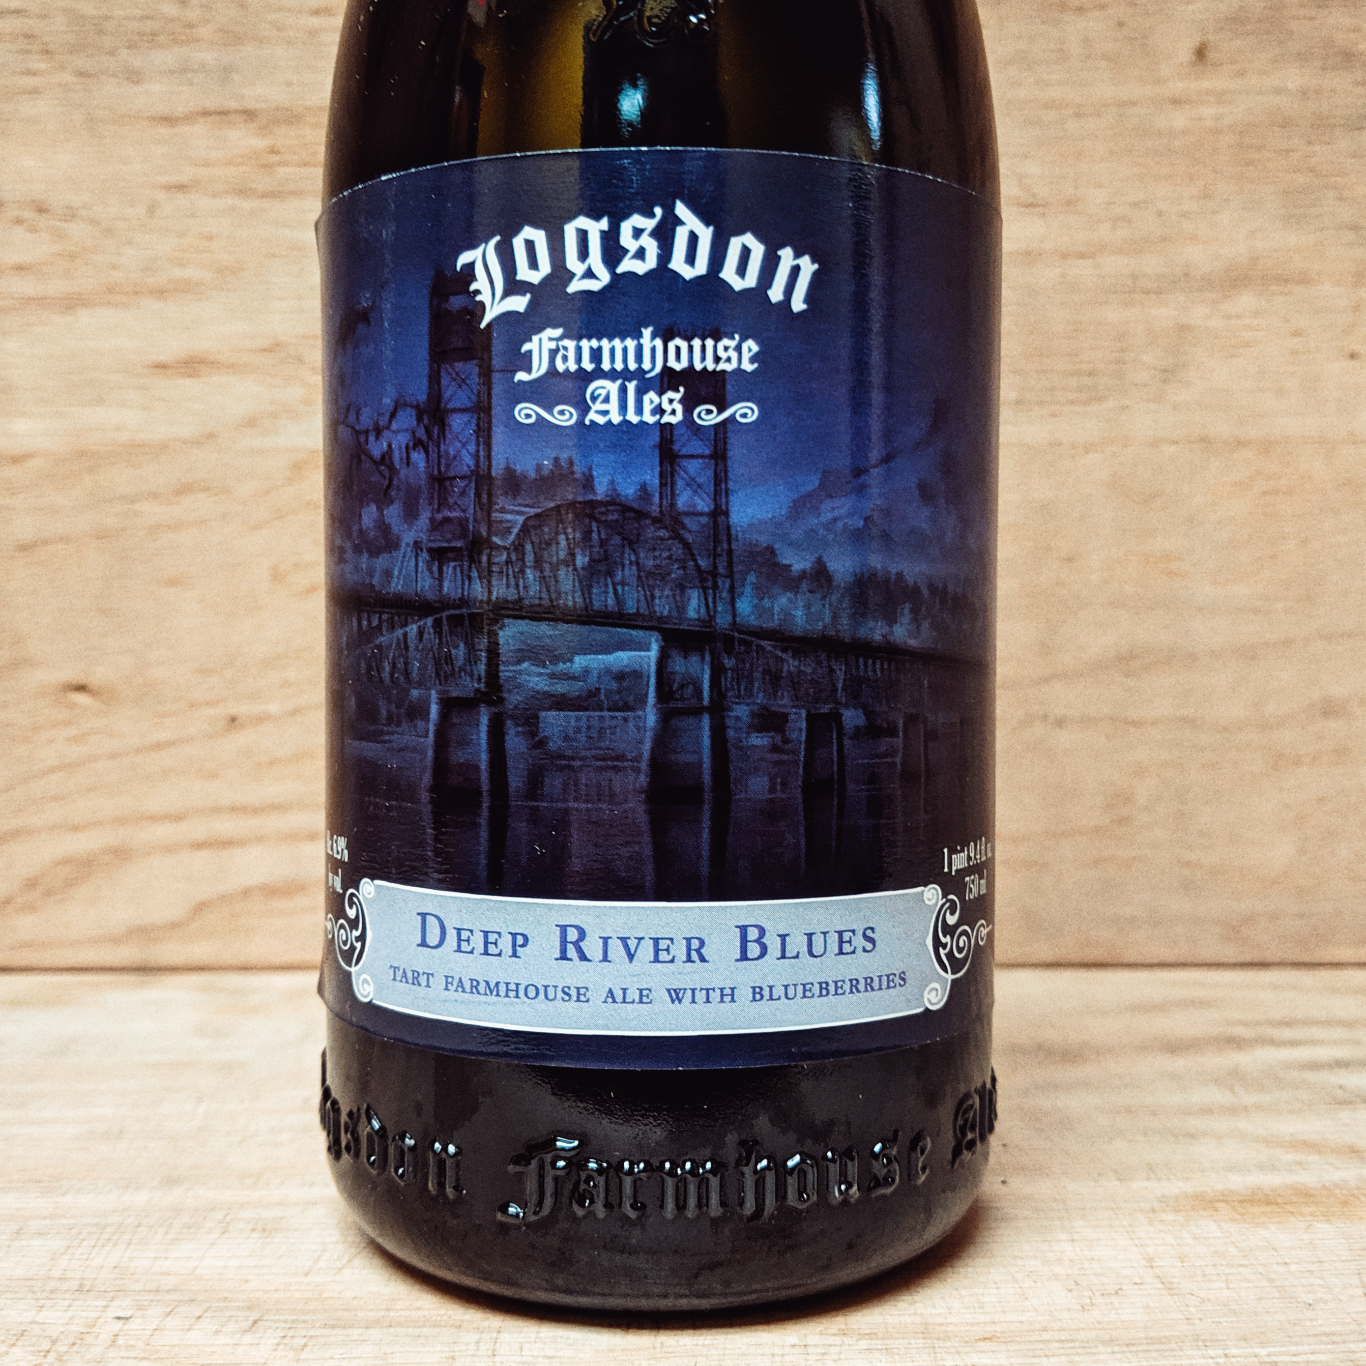 Logsdon 'Deep River Blues' Oak Aged Farmhouse Ale 750ml